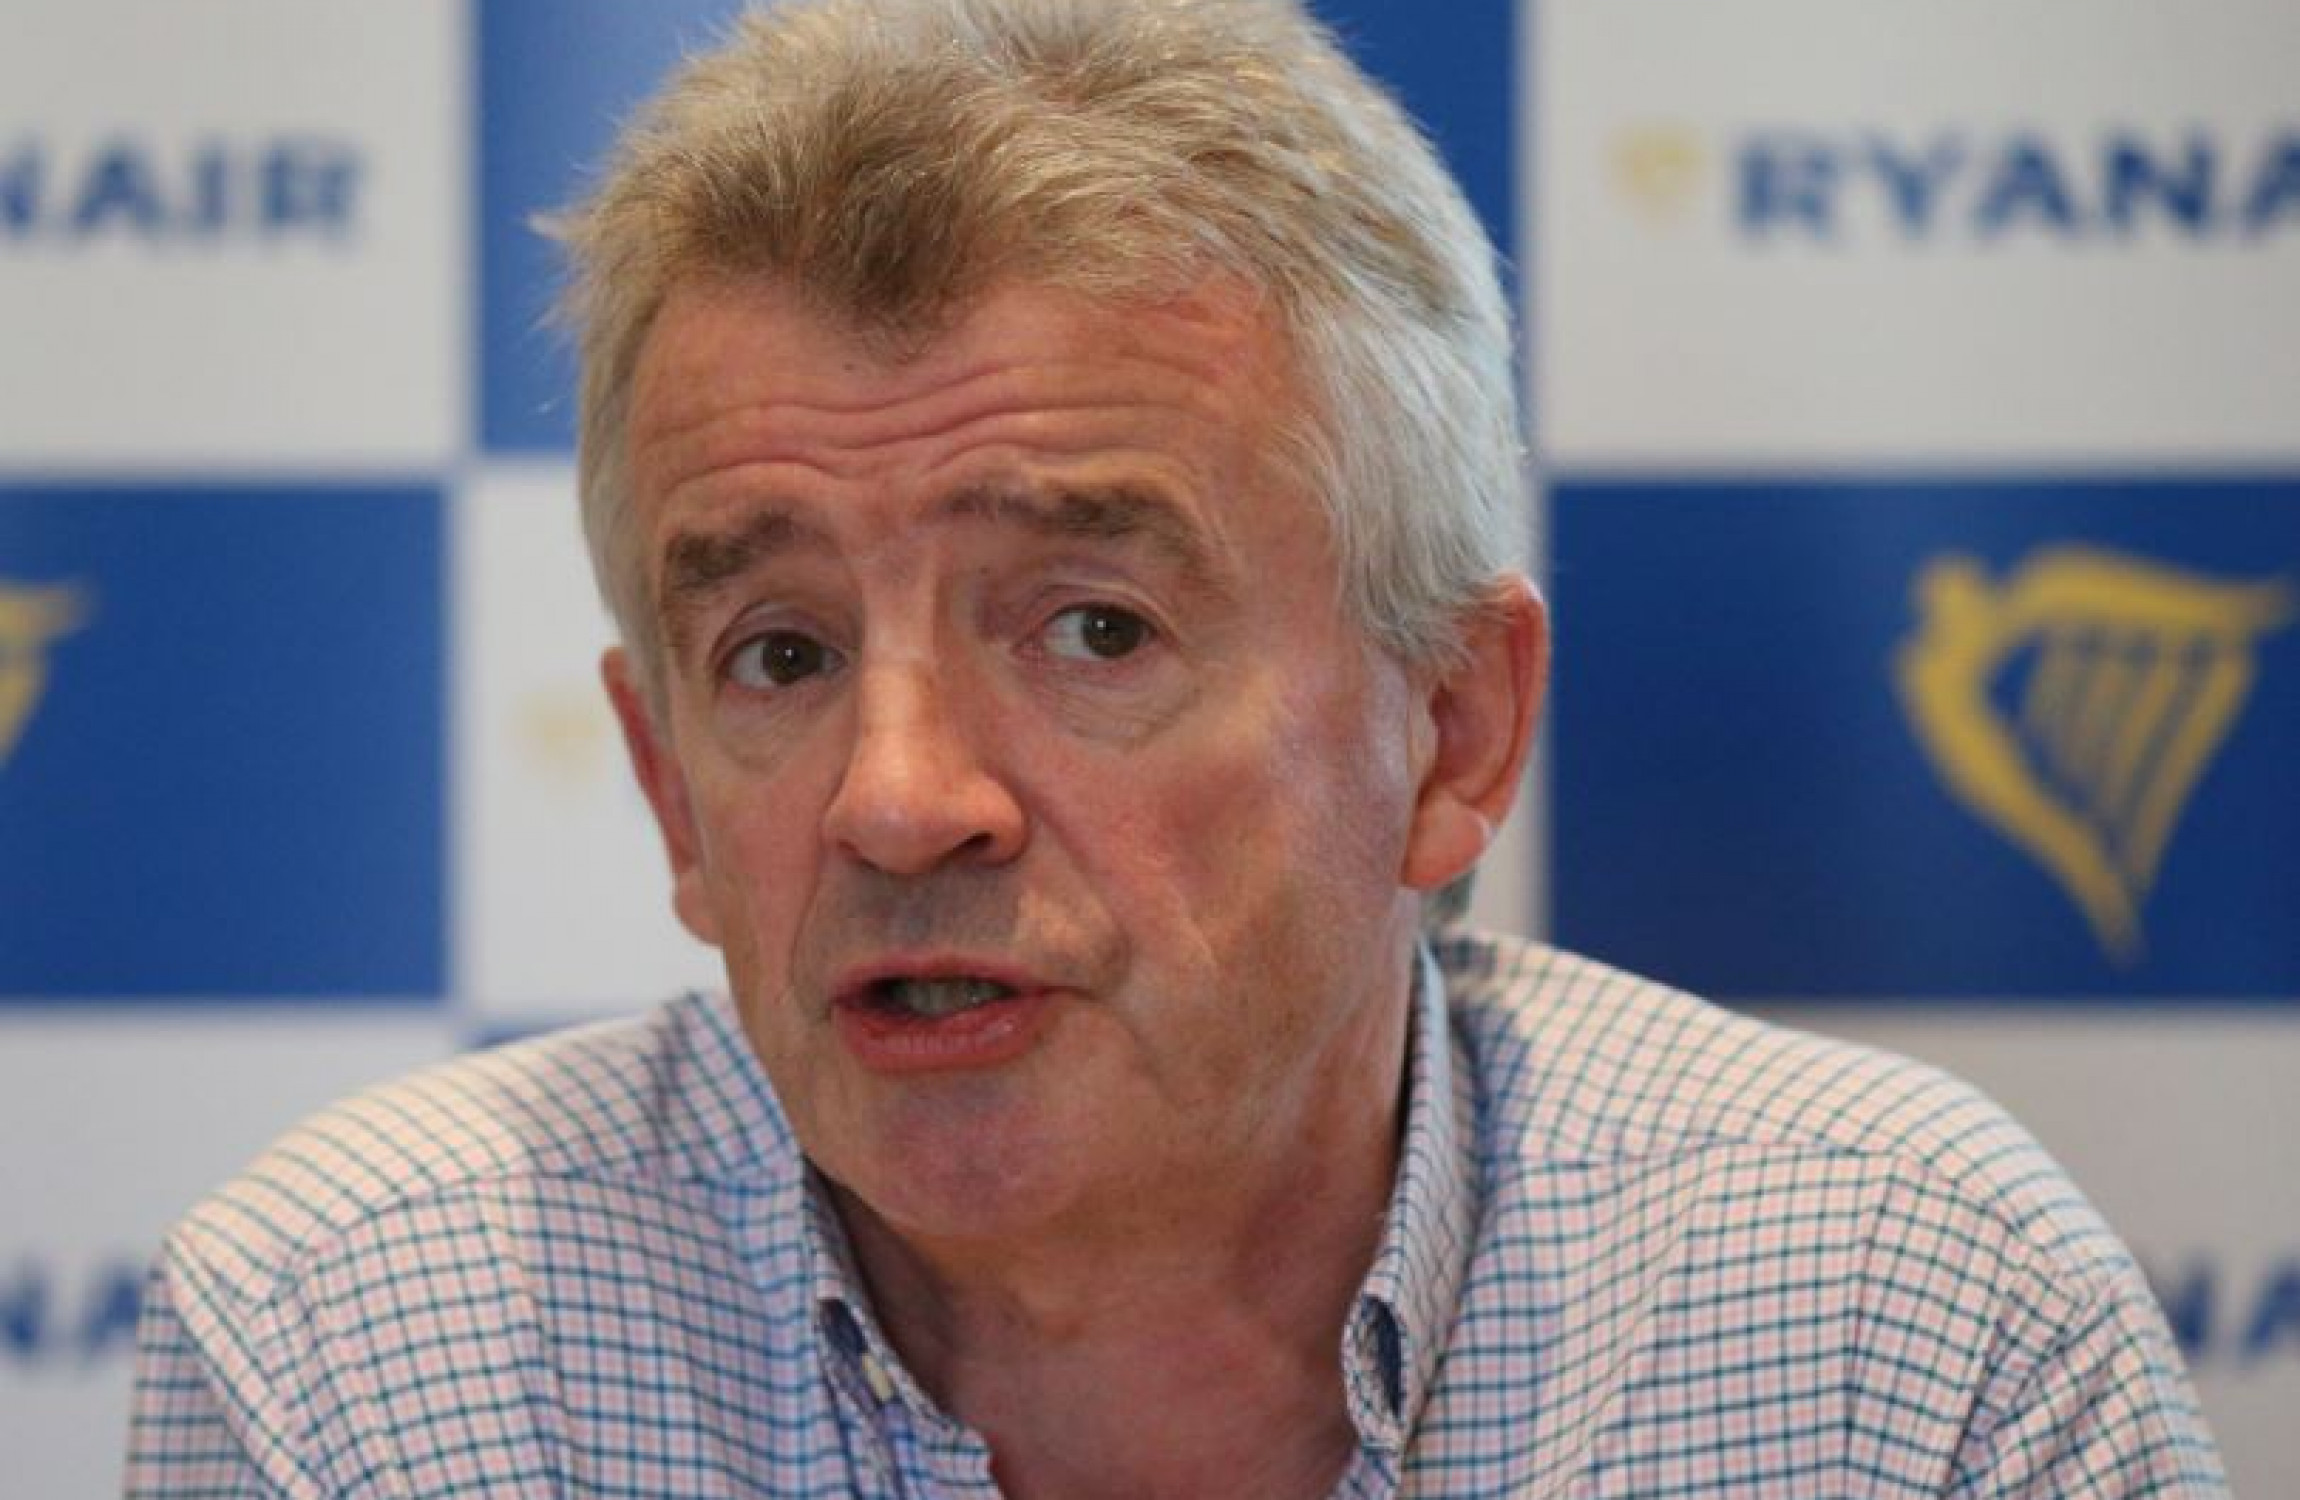 Passengers face disruptions as Ryanair cancels flights